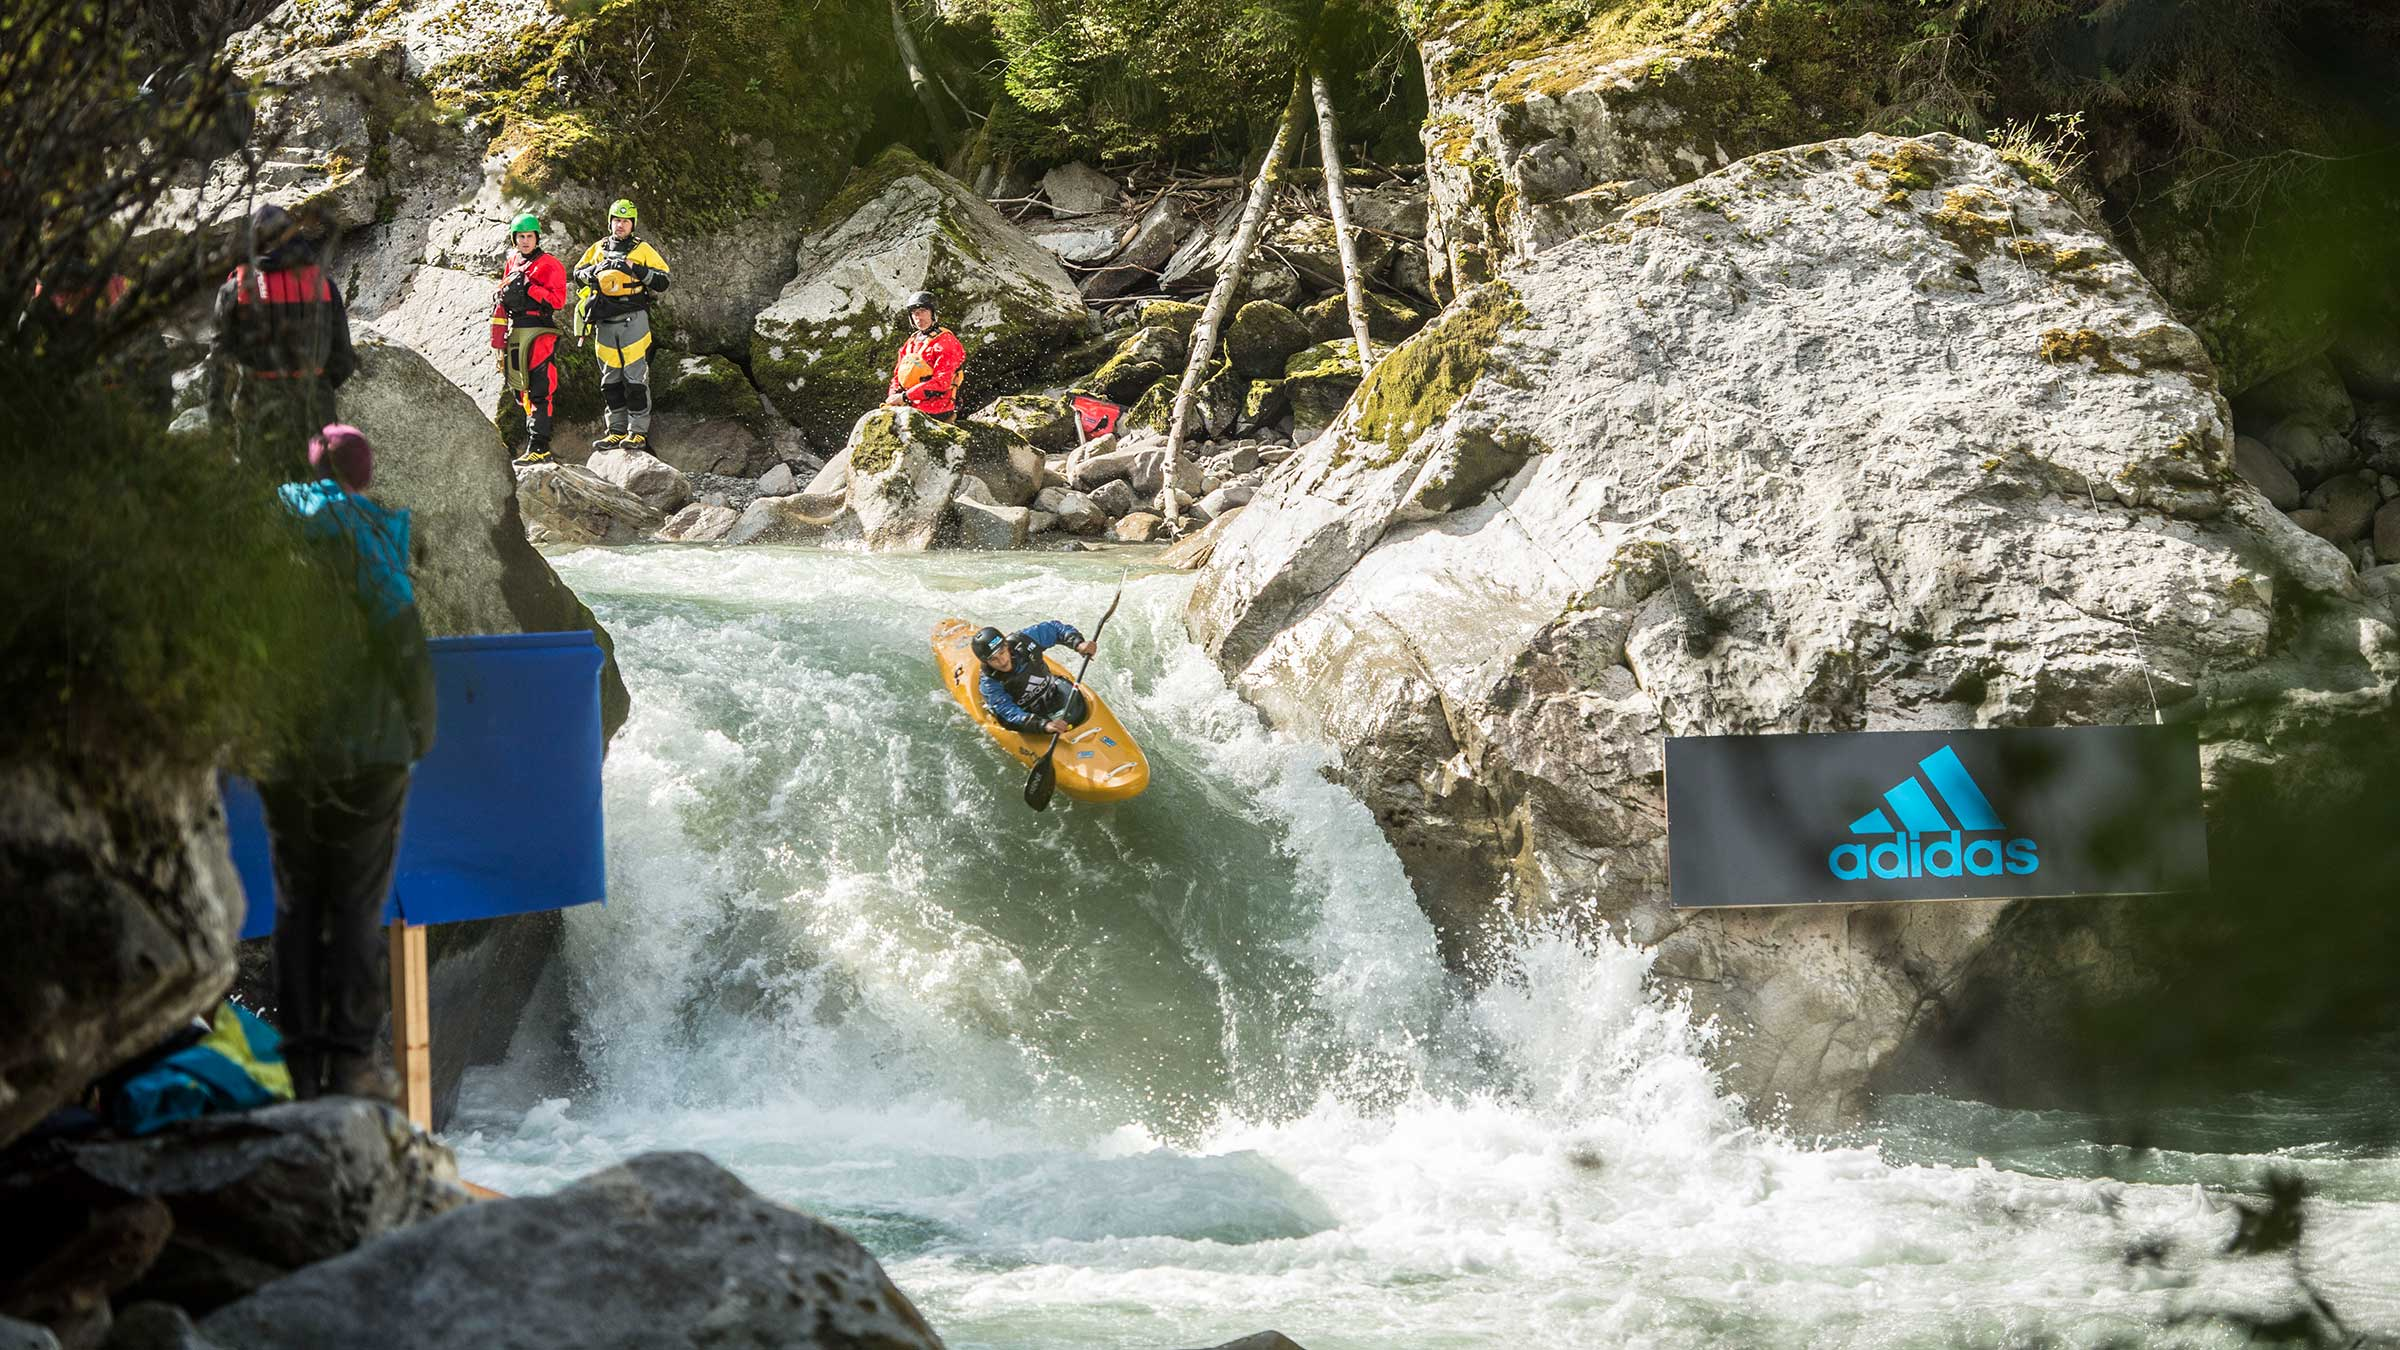 The Eiger North Face of kayak sports: 10 facts on 10 years of adidas Sickline in Ötztal